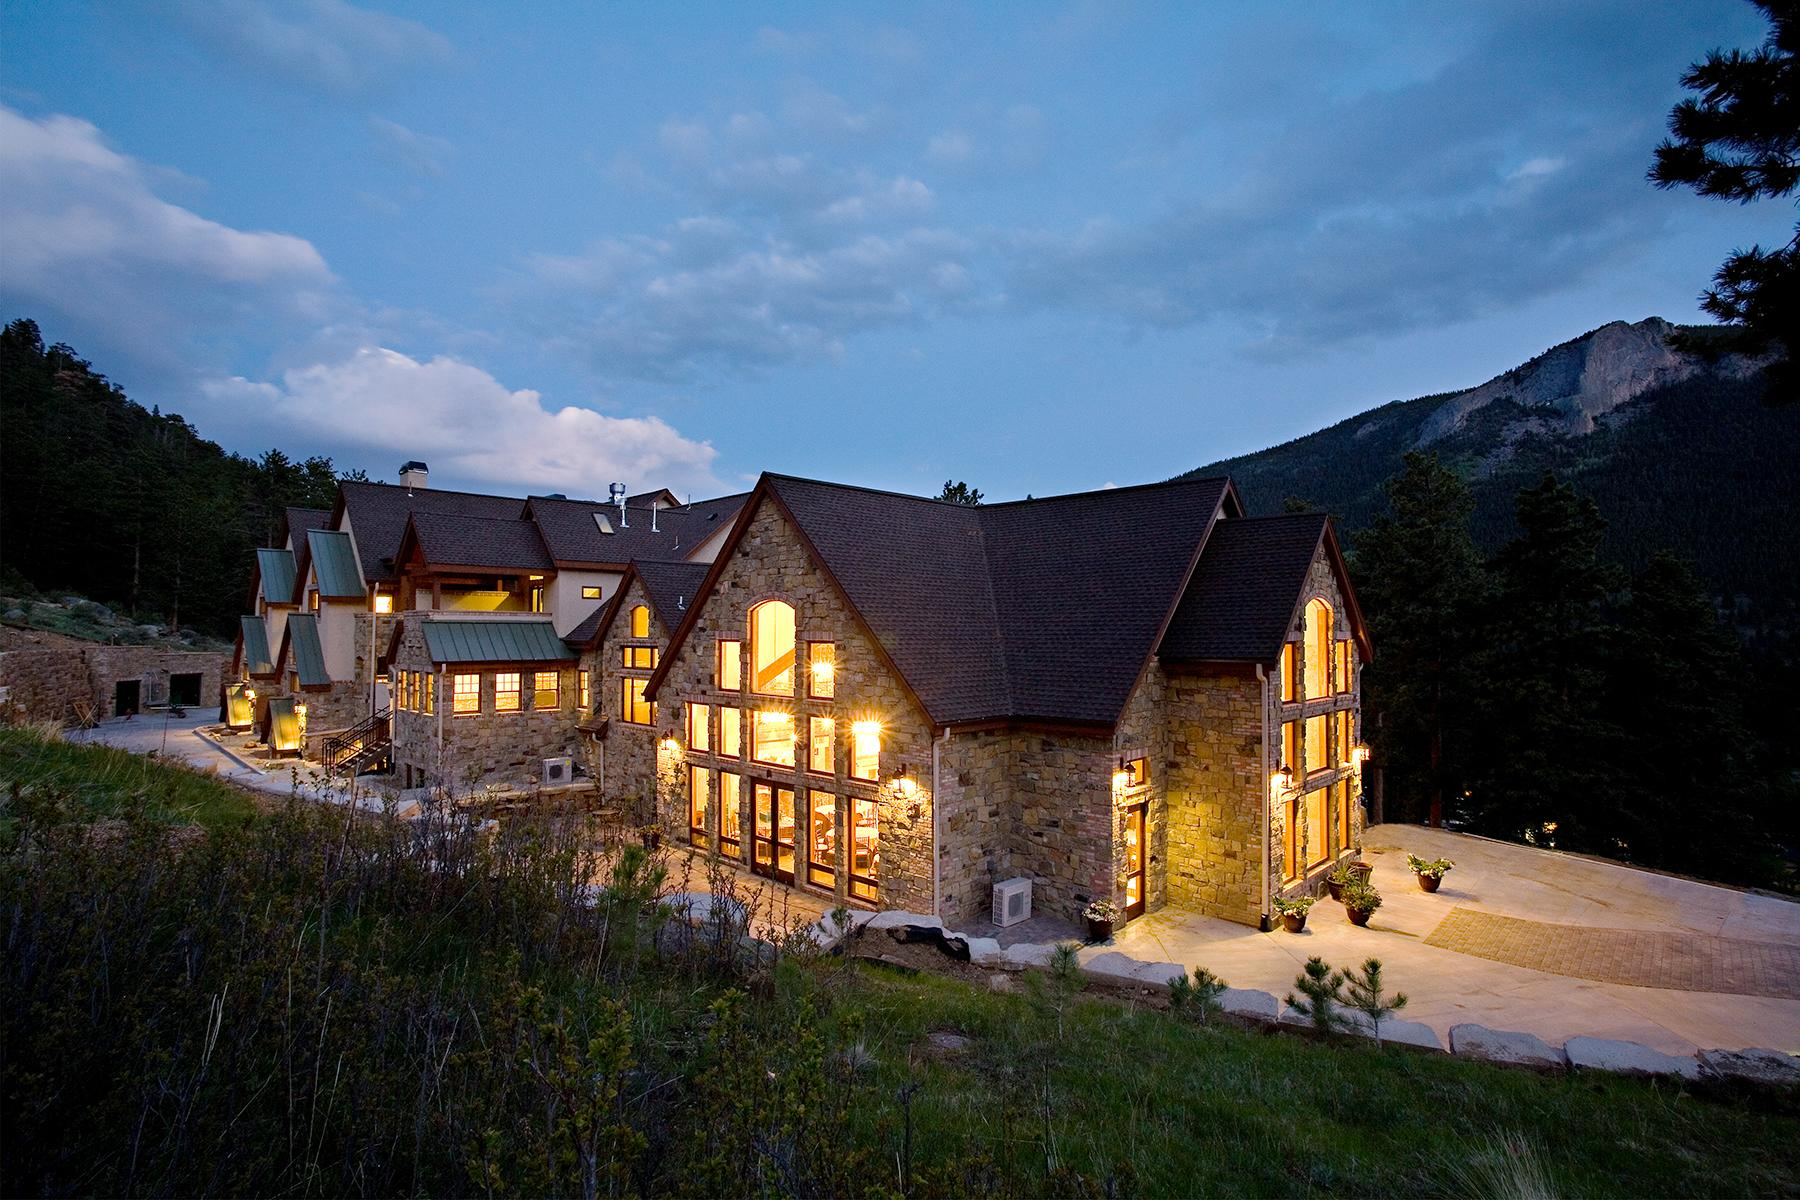 07_RusticWeddingVenues__DellaTerraMountainChateau_exterior2-night